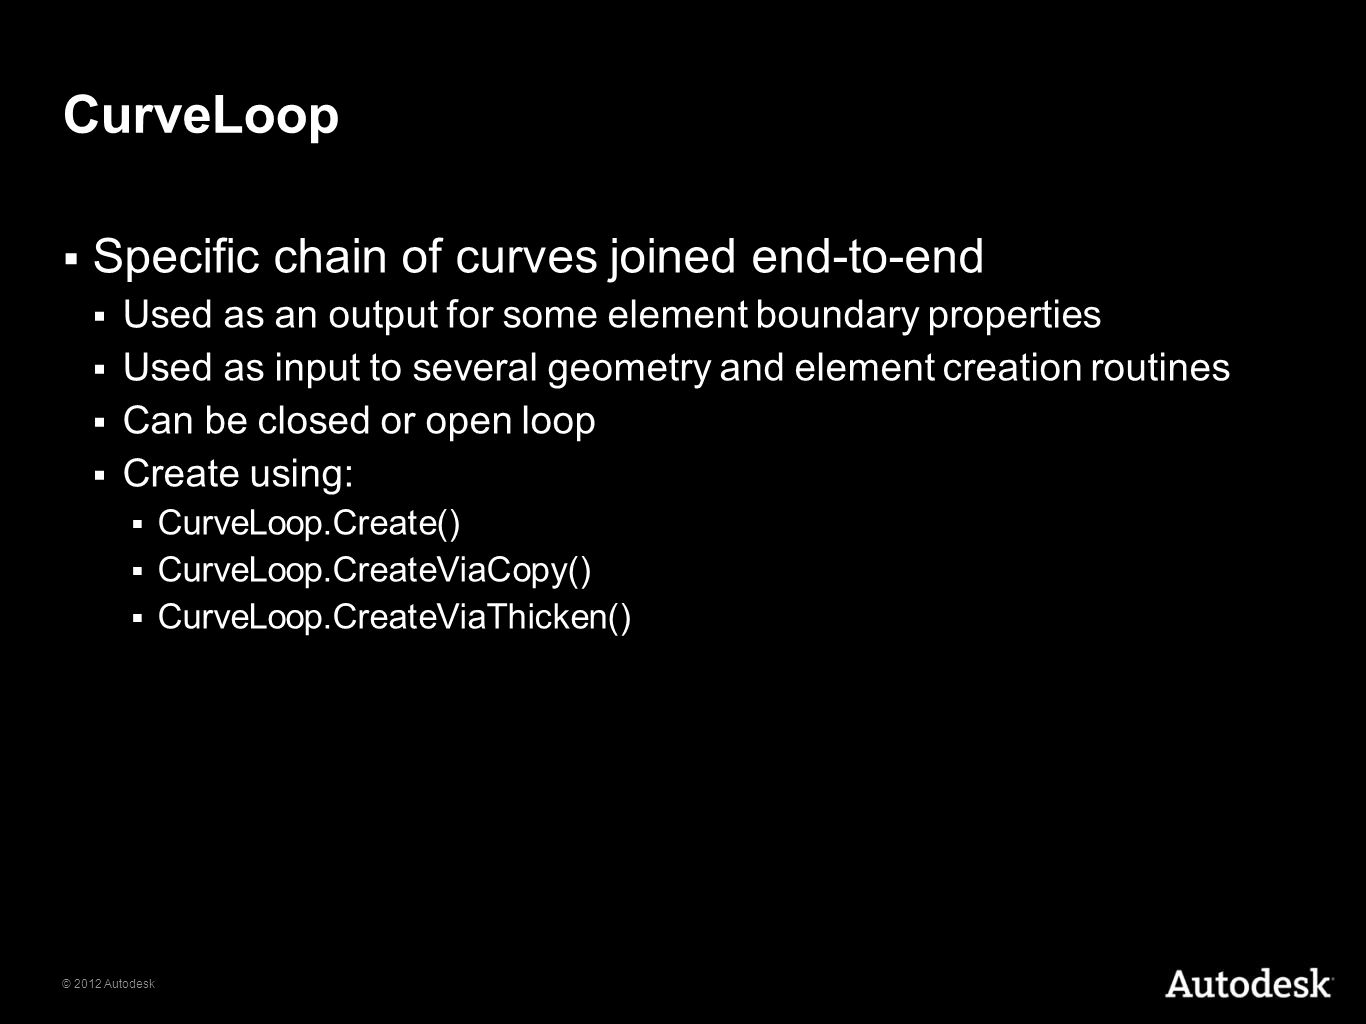 CurveLoop Specific chain of curves joined end-to-end